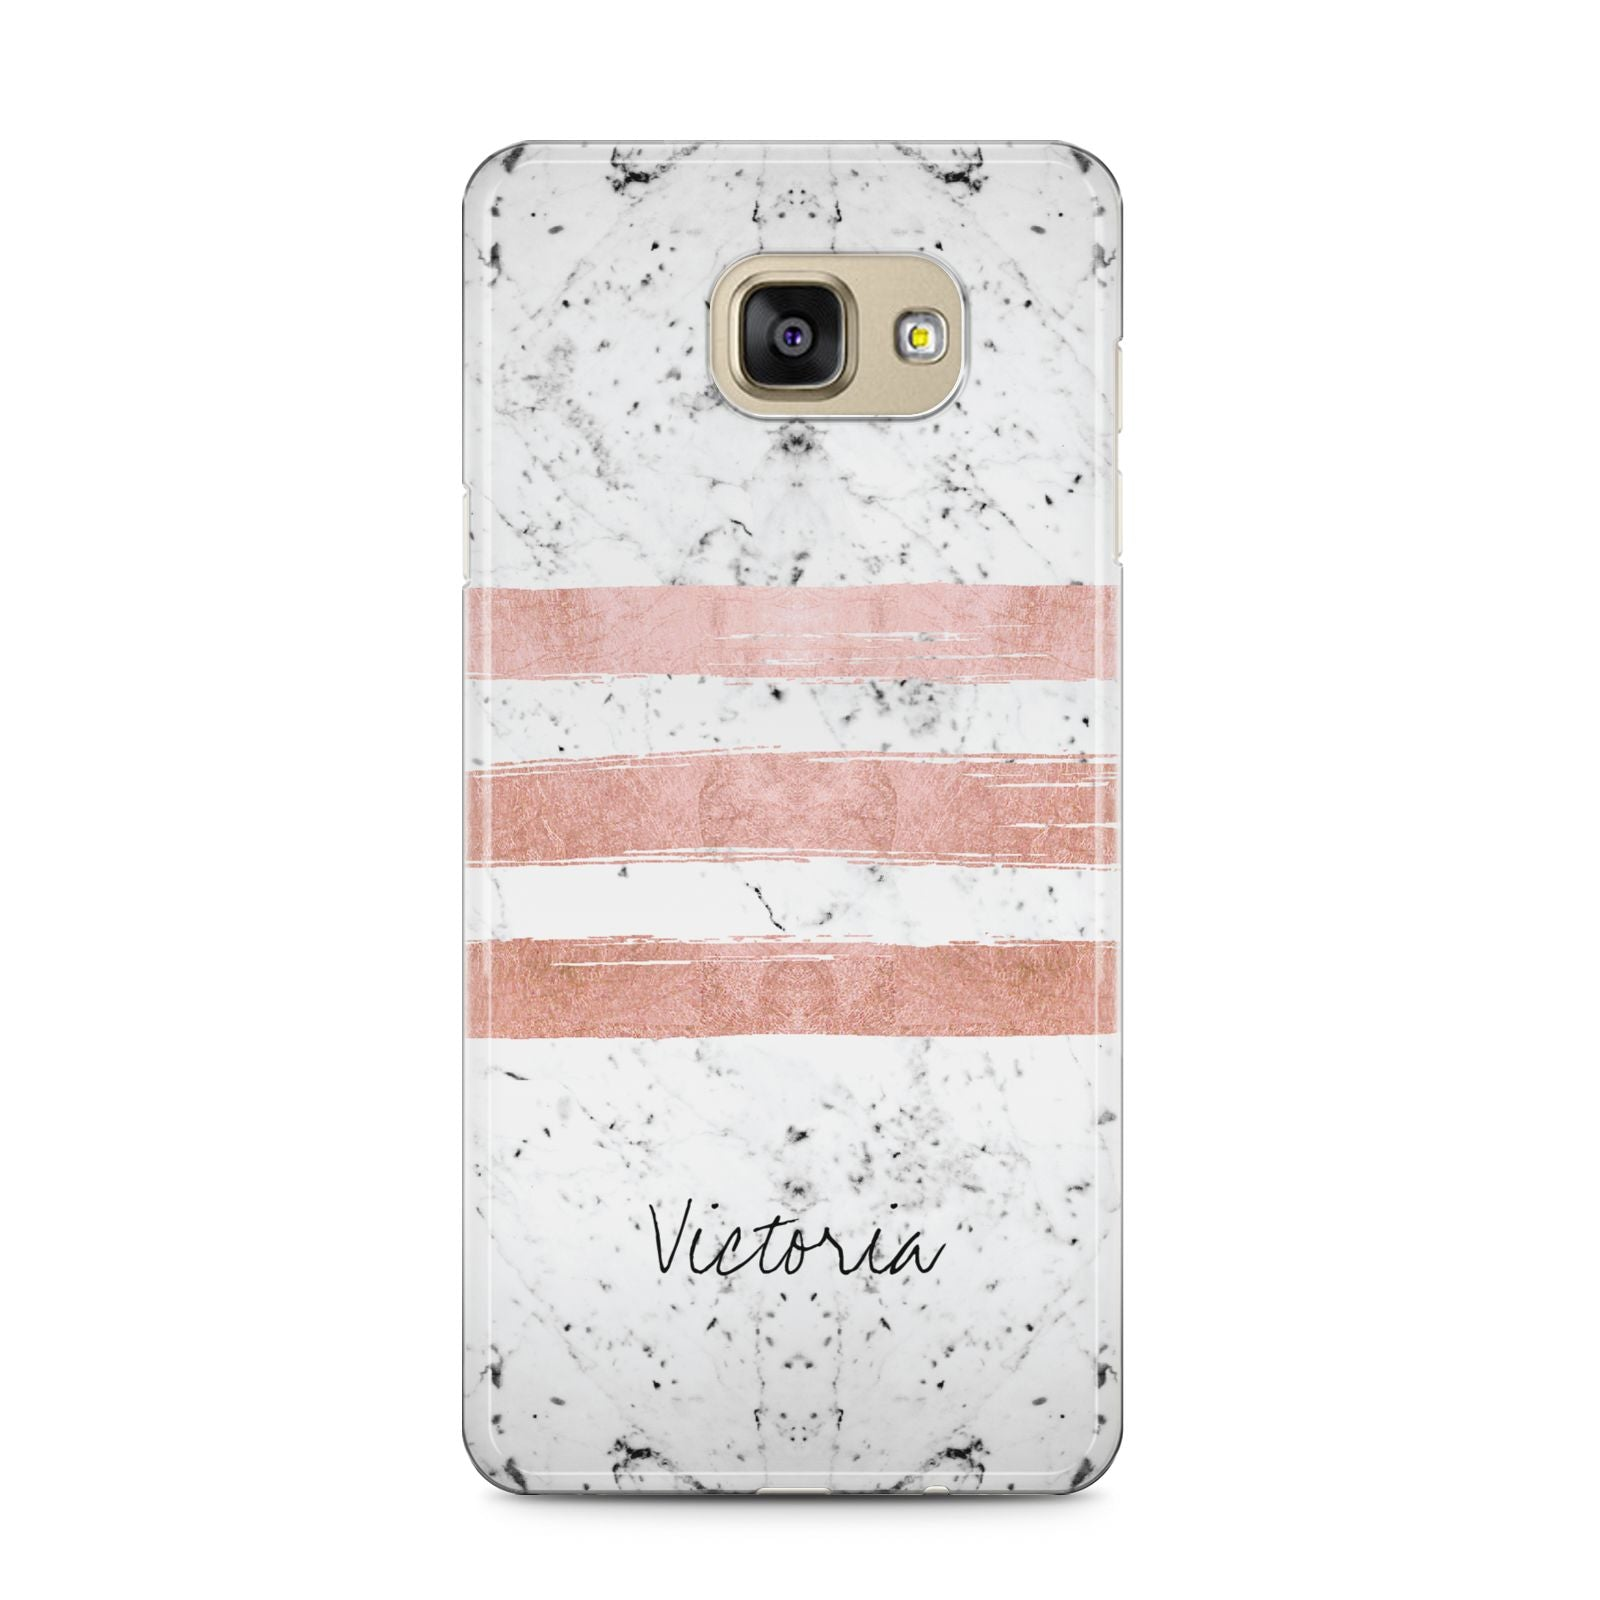 Personalised Rose Gold Brush Marble Initial Samsung Galaxy A5 2016 Case on gold phone